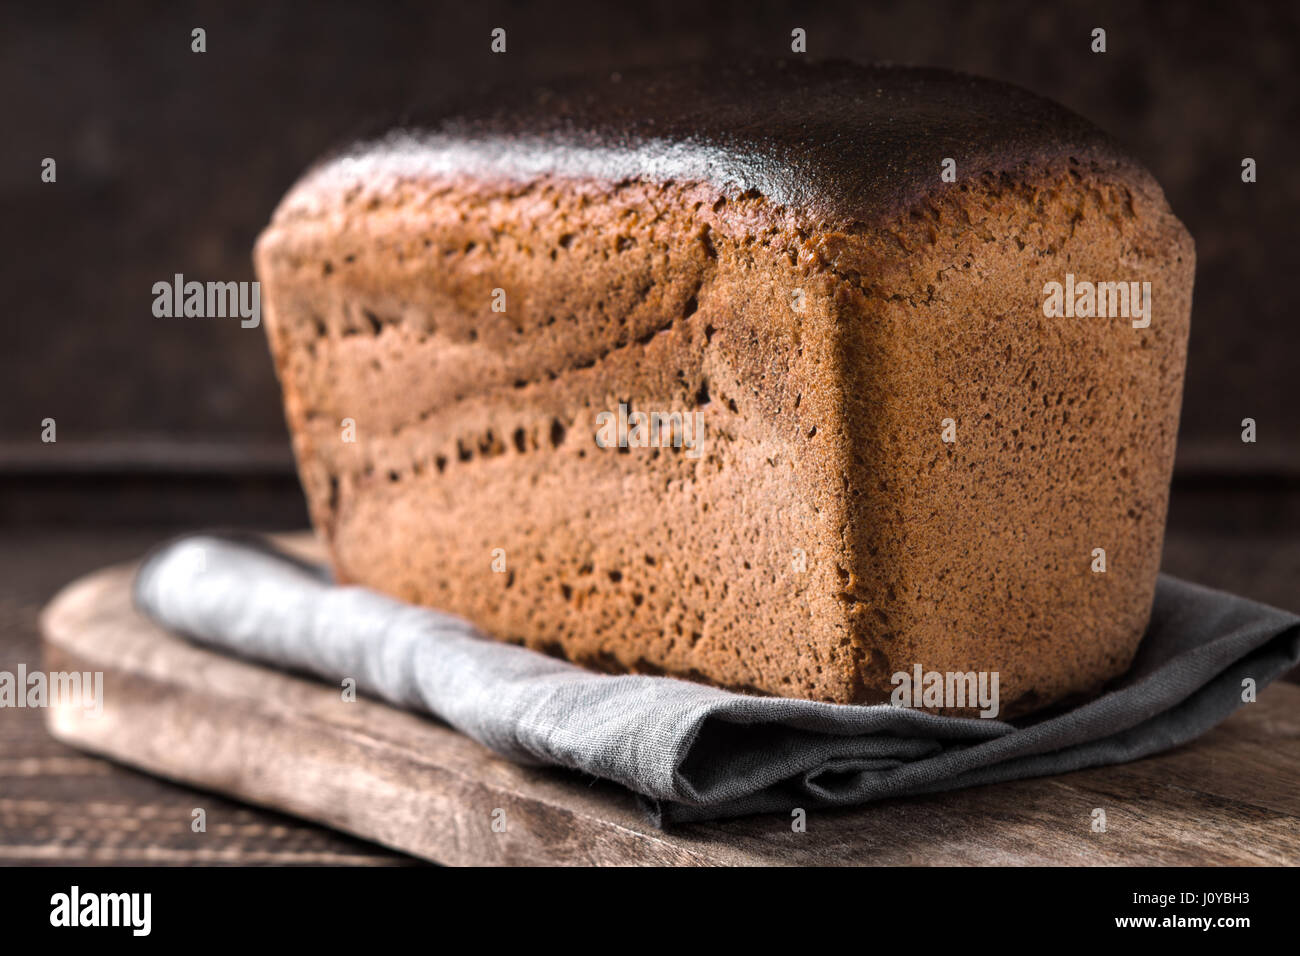 Rye bread on the wooden board horizontal - Stock Image